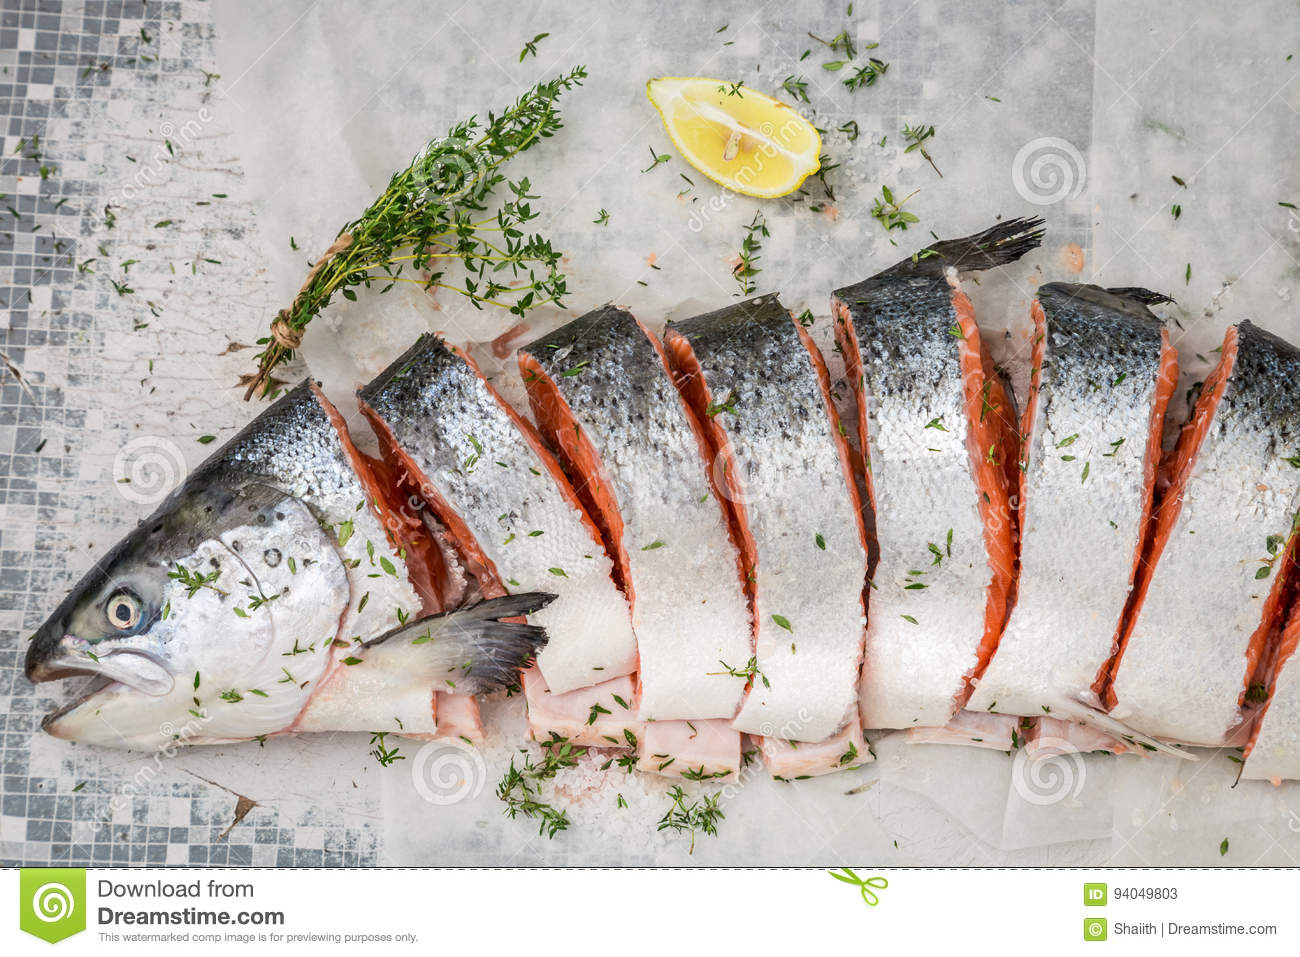 8b6bcb11bf96 Preparing Salmon With Thyme And Salt For Grill Stock Image - Image ...